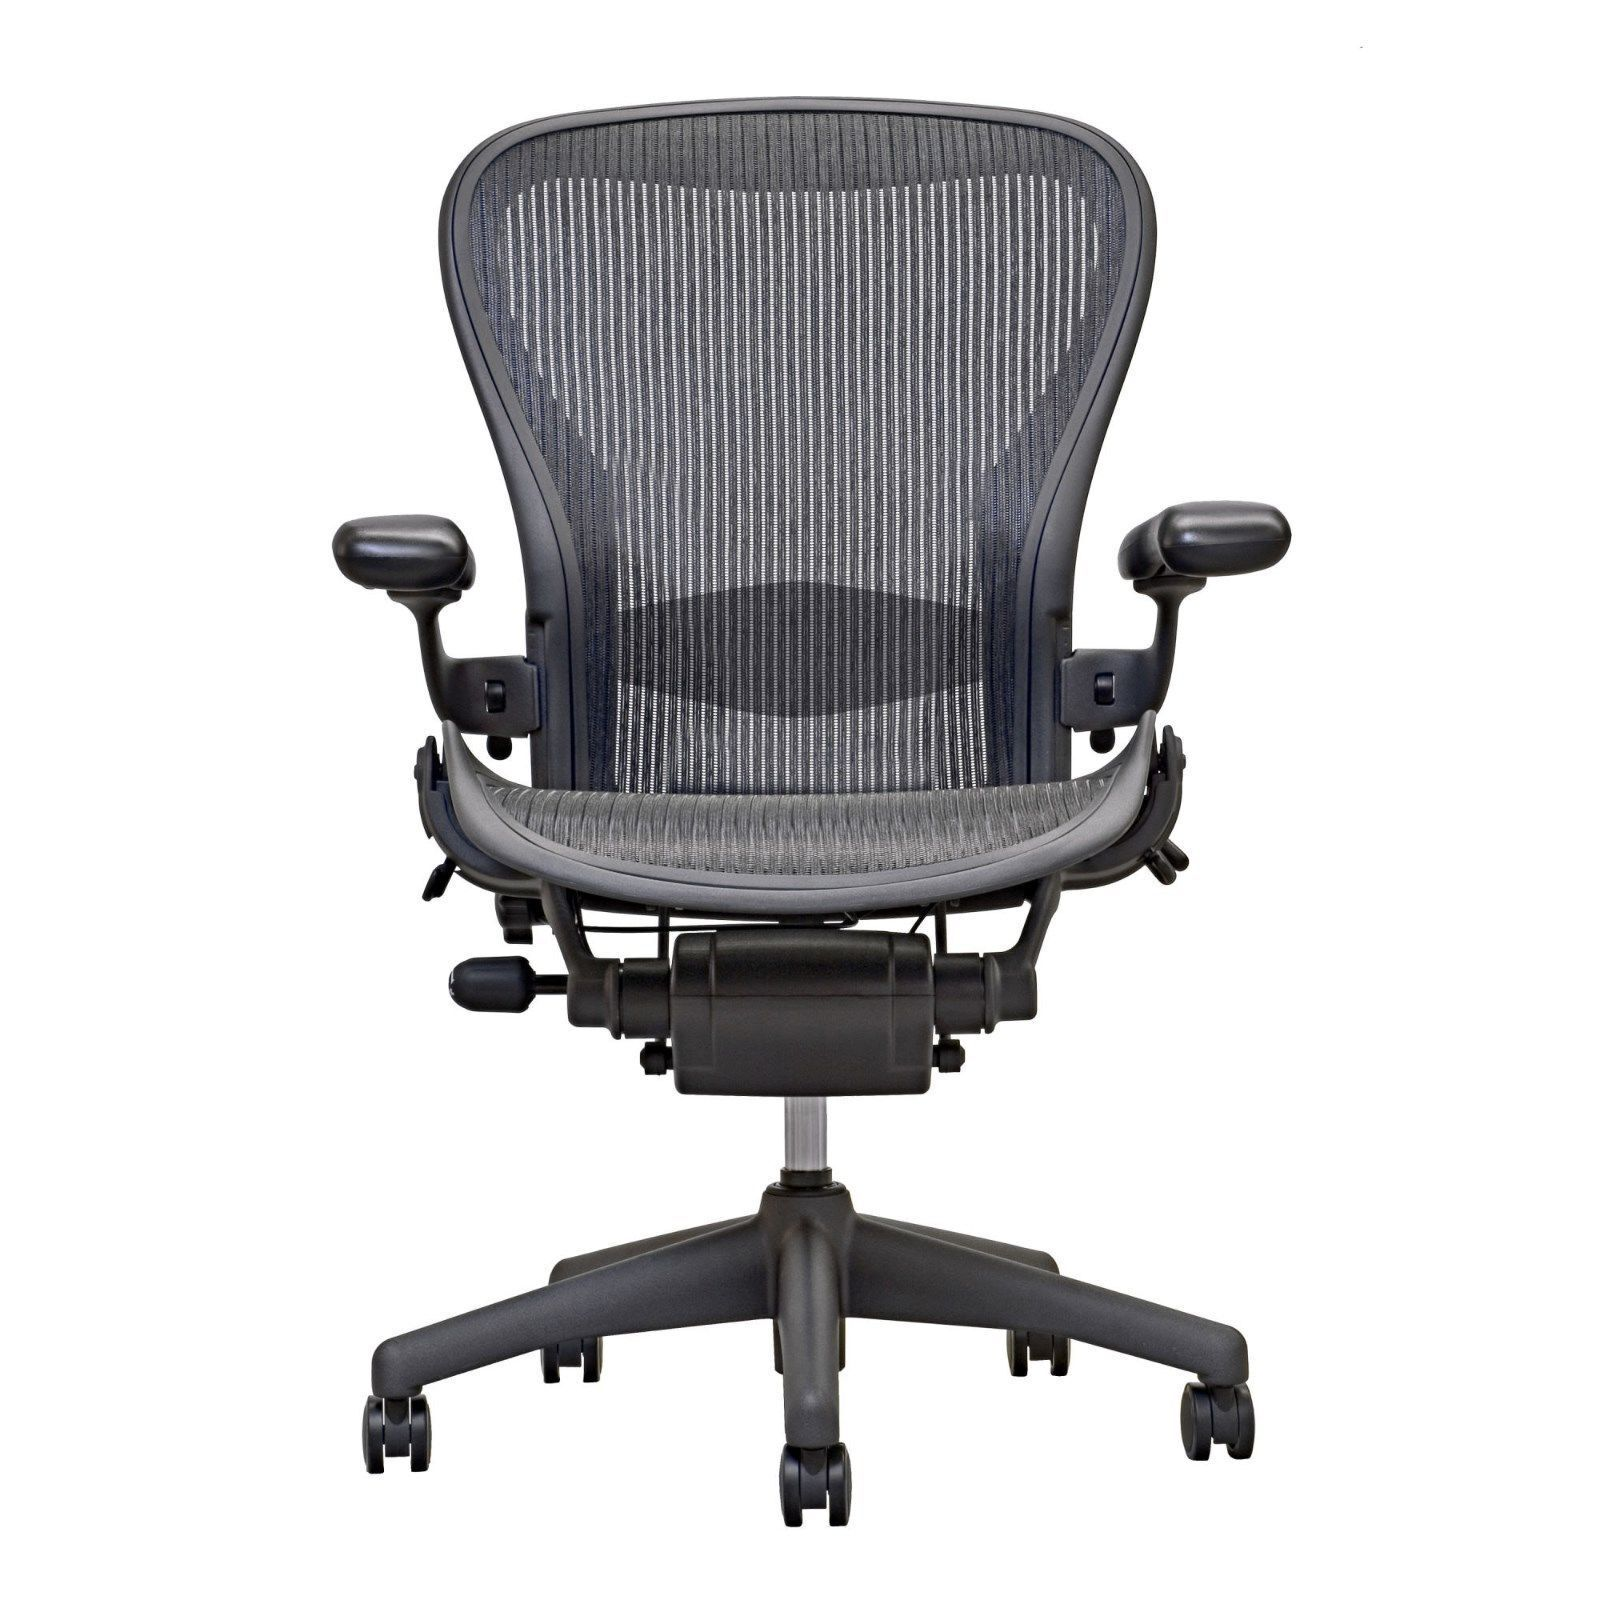 Top 10 puter Chairs